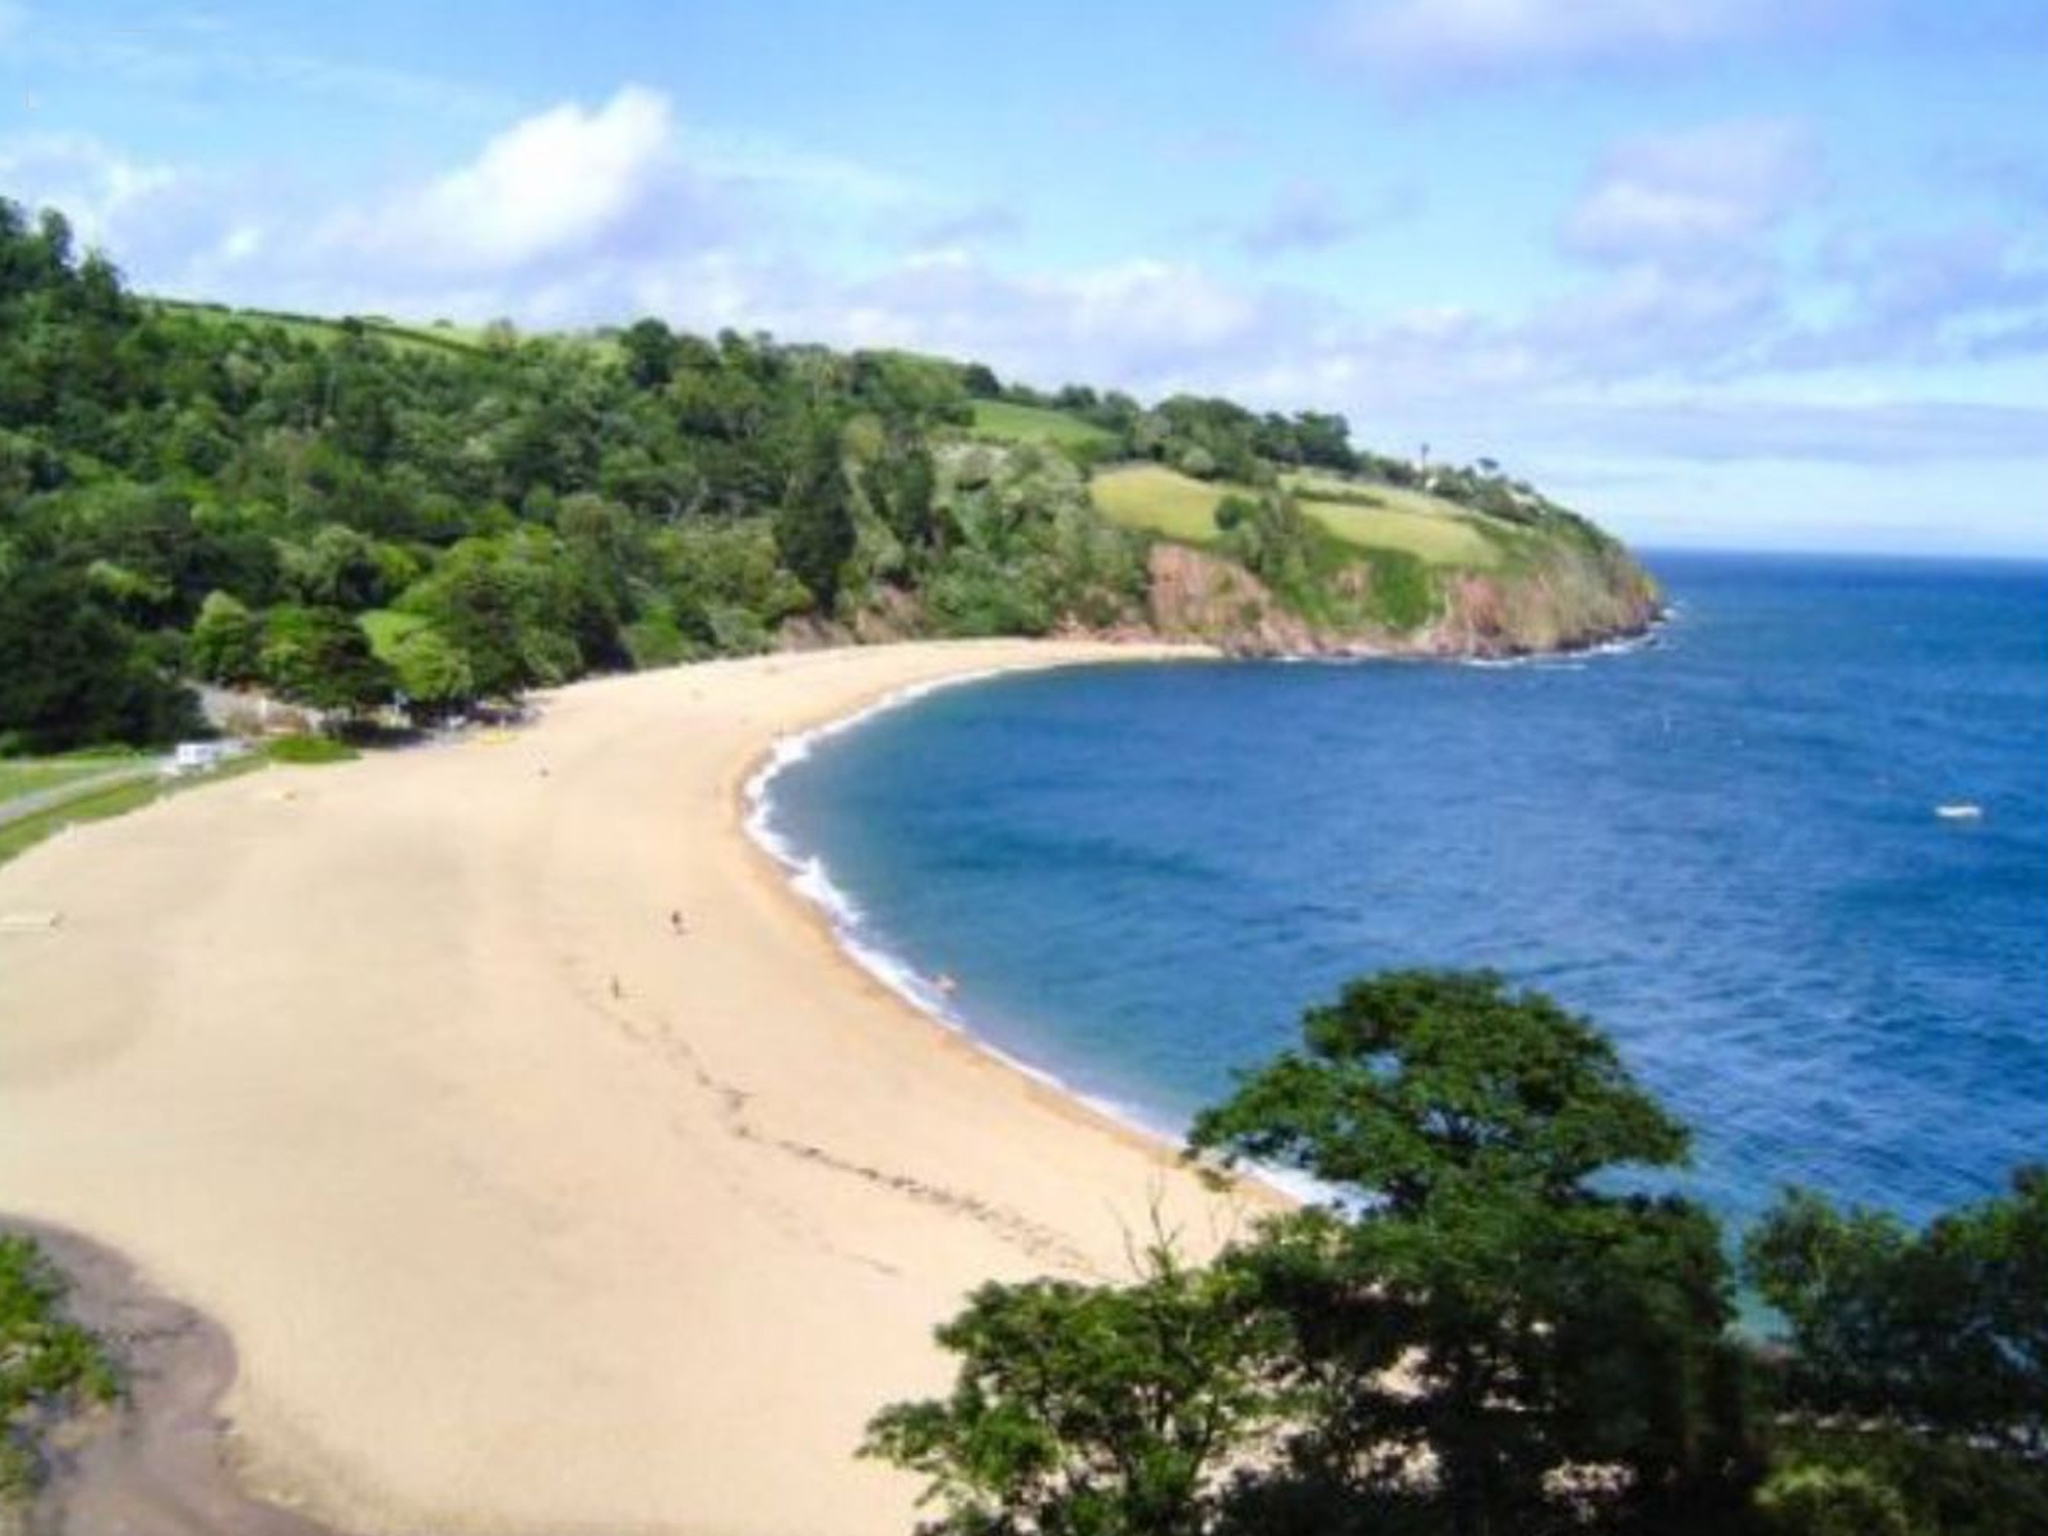 There are so many beautiful beaches close by.